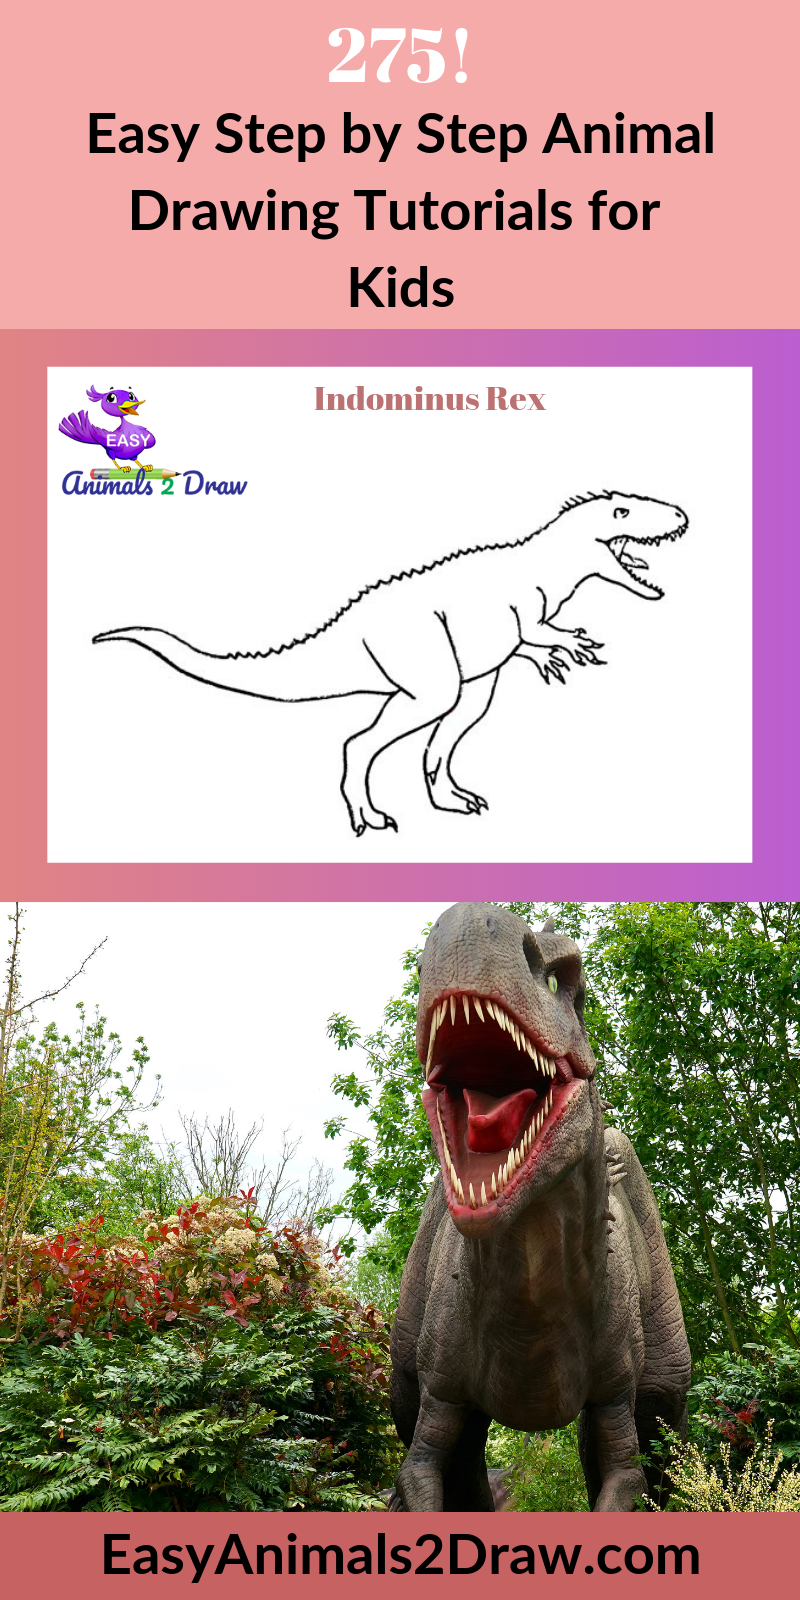 Learn how to draw an amazing Indominus Rex with this easy